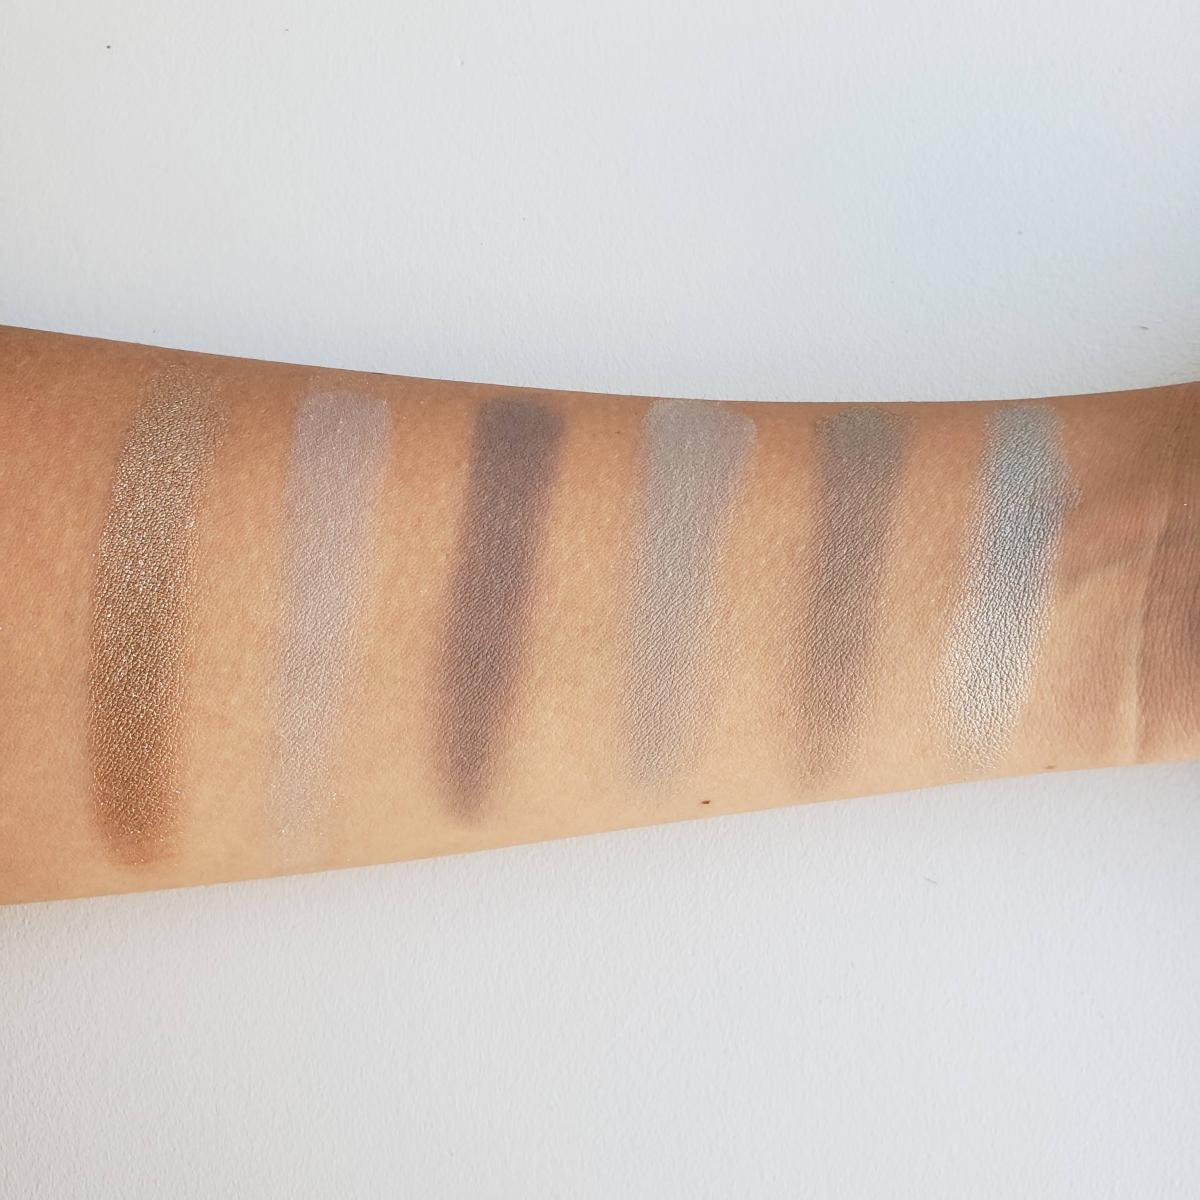 Jeffree Star Cosmetics Cremated Eyeshadow Palette Review Swatches 3